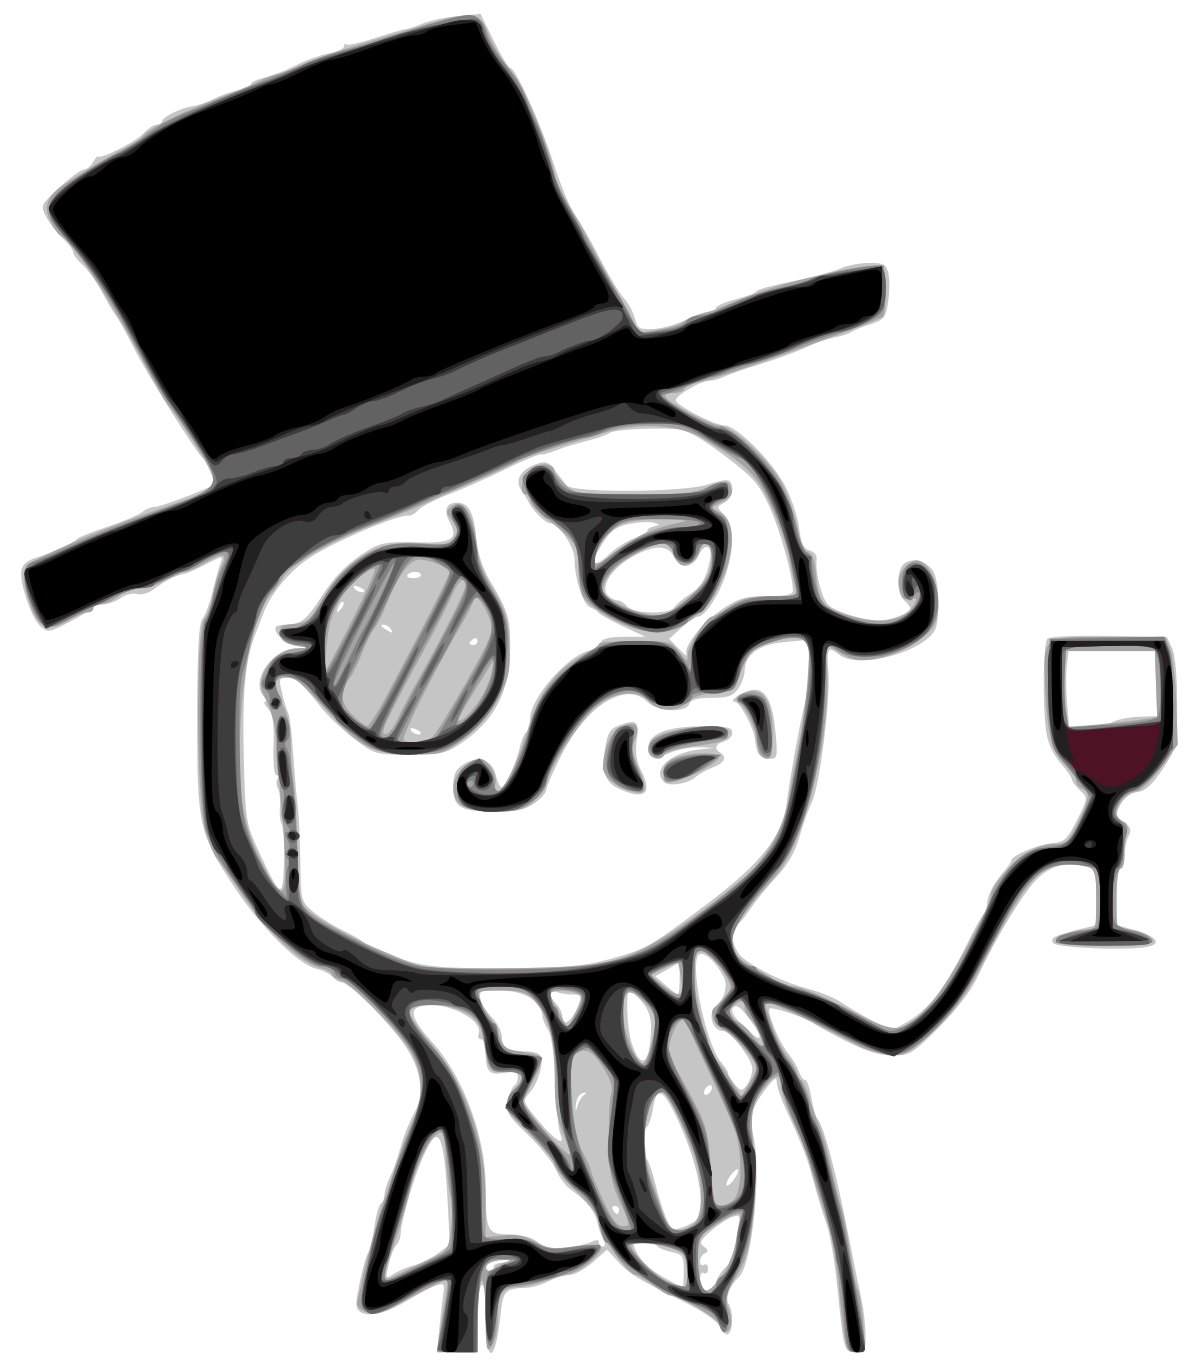 Clipart of a jake from brandon brown png royalty free library LulzSec - Wikipedia png royalty free library